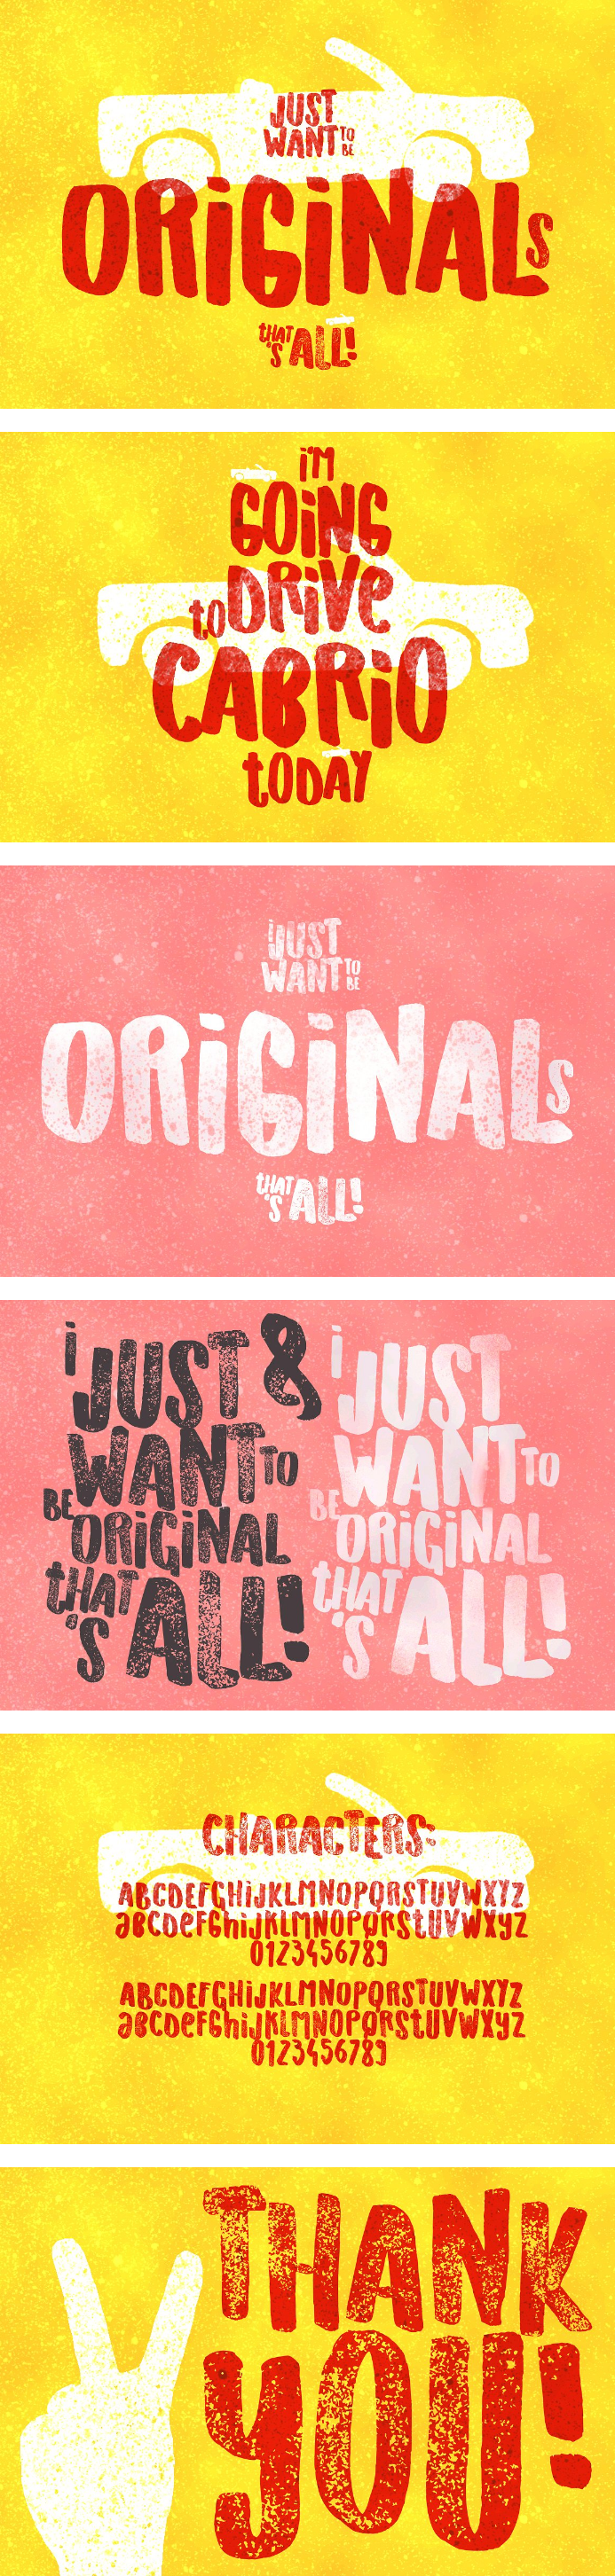 Originals Handdrawn Playful Display Typeface